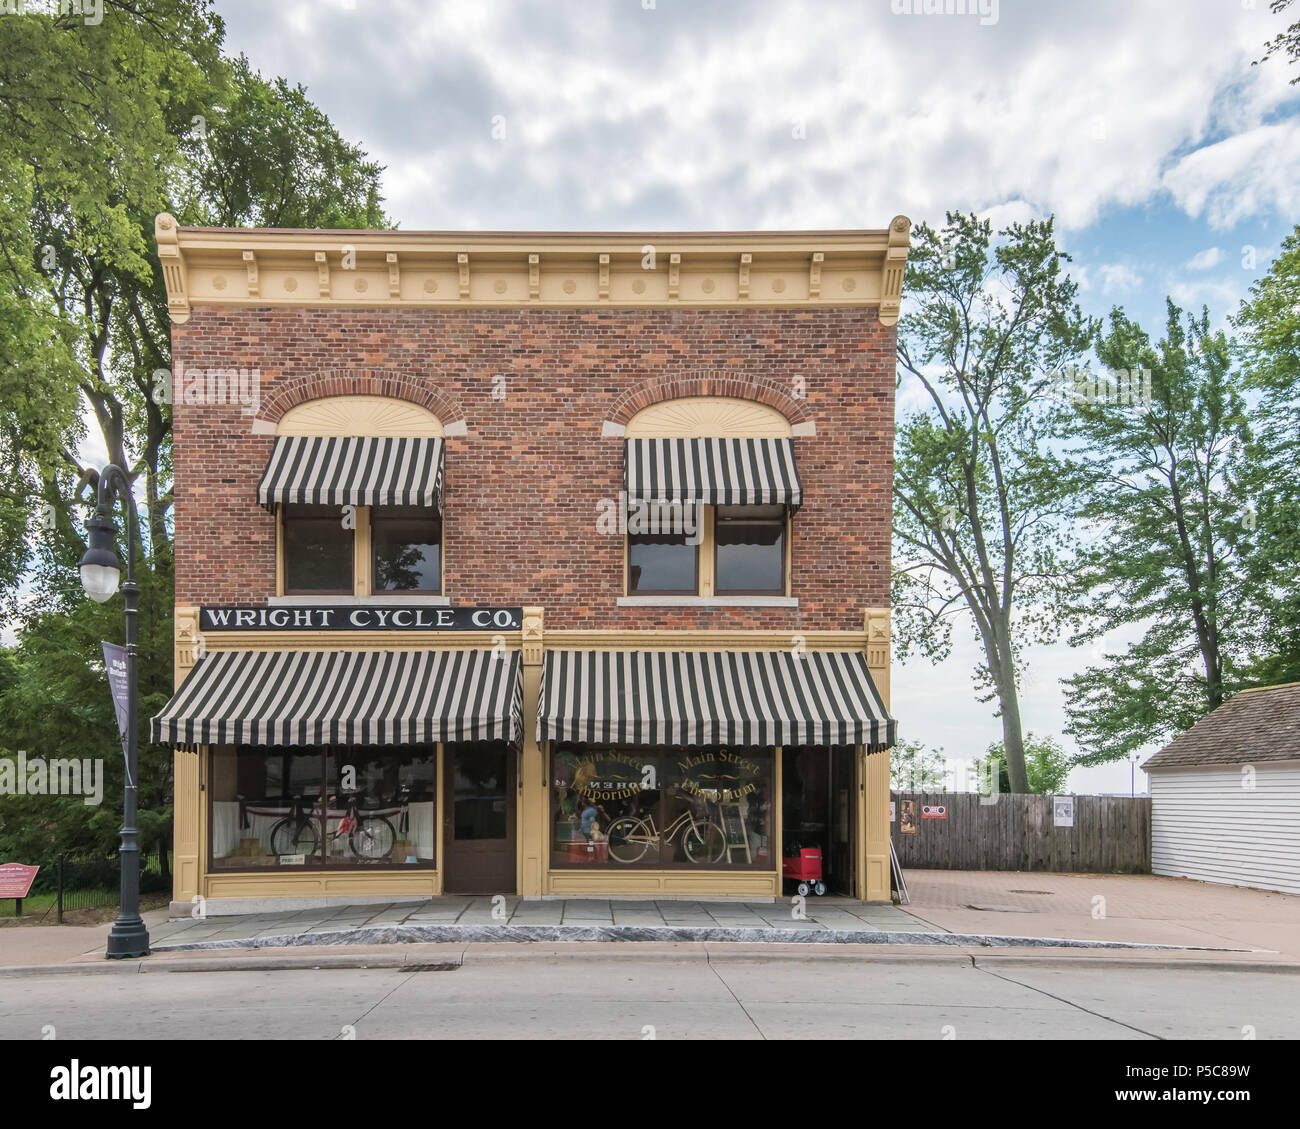 DEARBORN, MI/USA - JUNE 16, 2018: Wright Cycle Co. building at The Henry Ford (THF) Motor Muster car show, held at Greenfield Village, near Detroit. - Stock Image